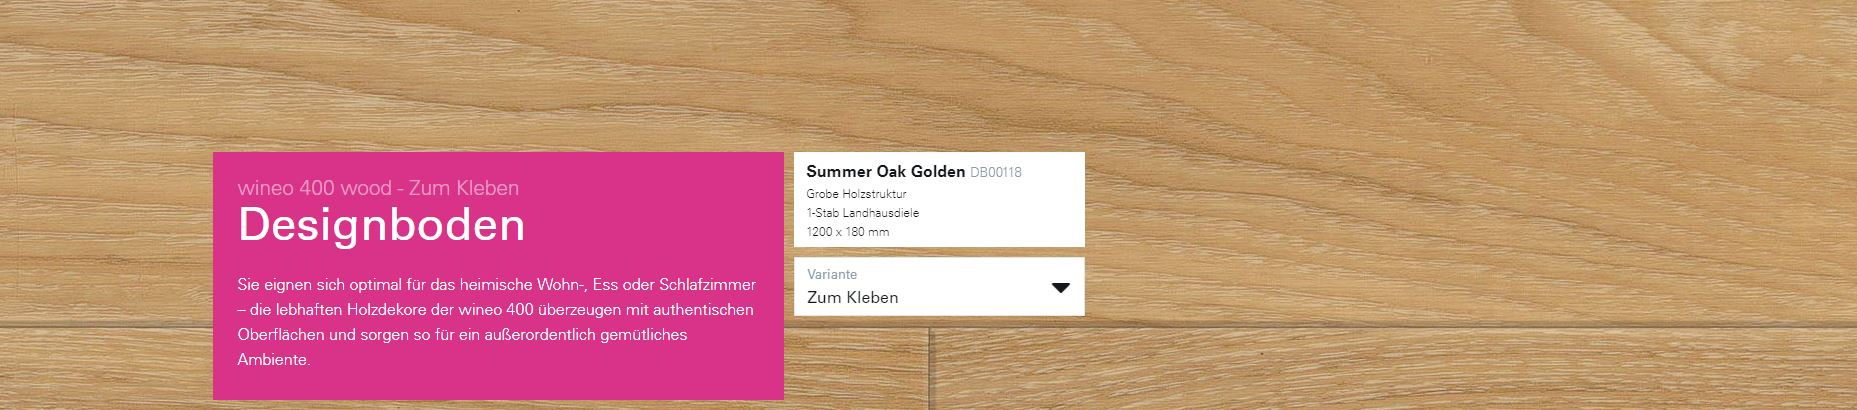 Wineo 400 Summer Oak Golden DB00118 @ Boden4You.com Design Bodenbelag günstig und Trsuted Shop sicher kaufen